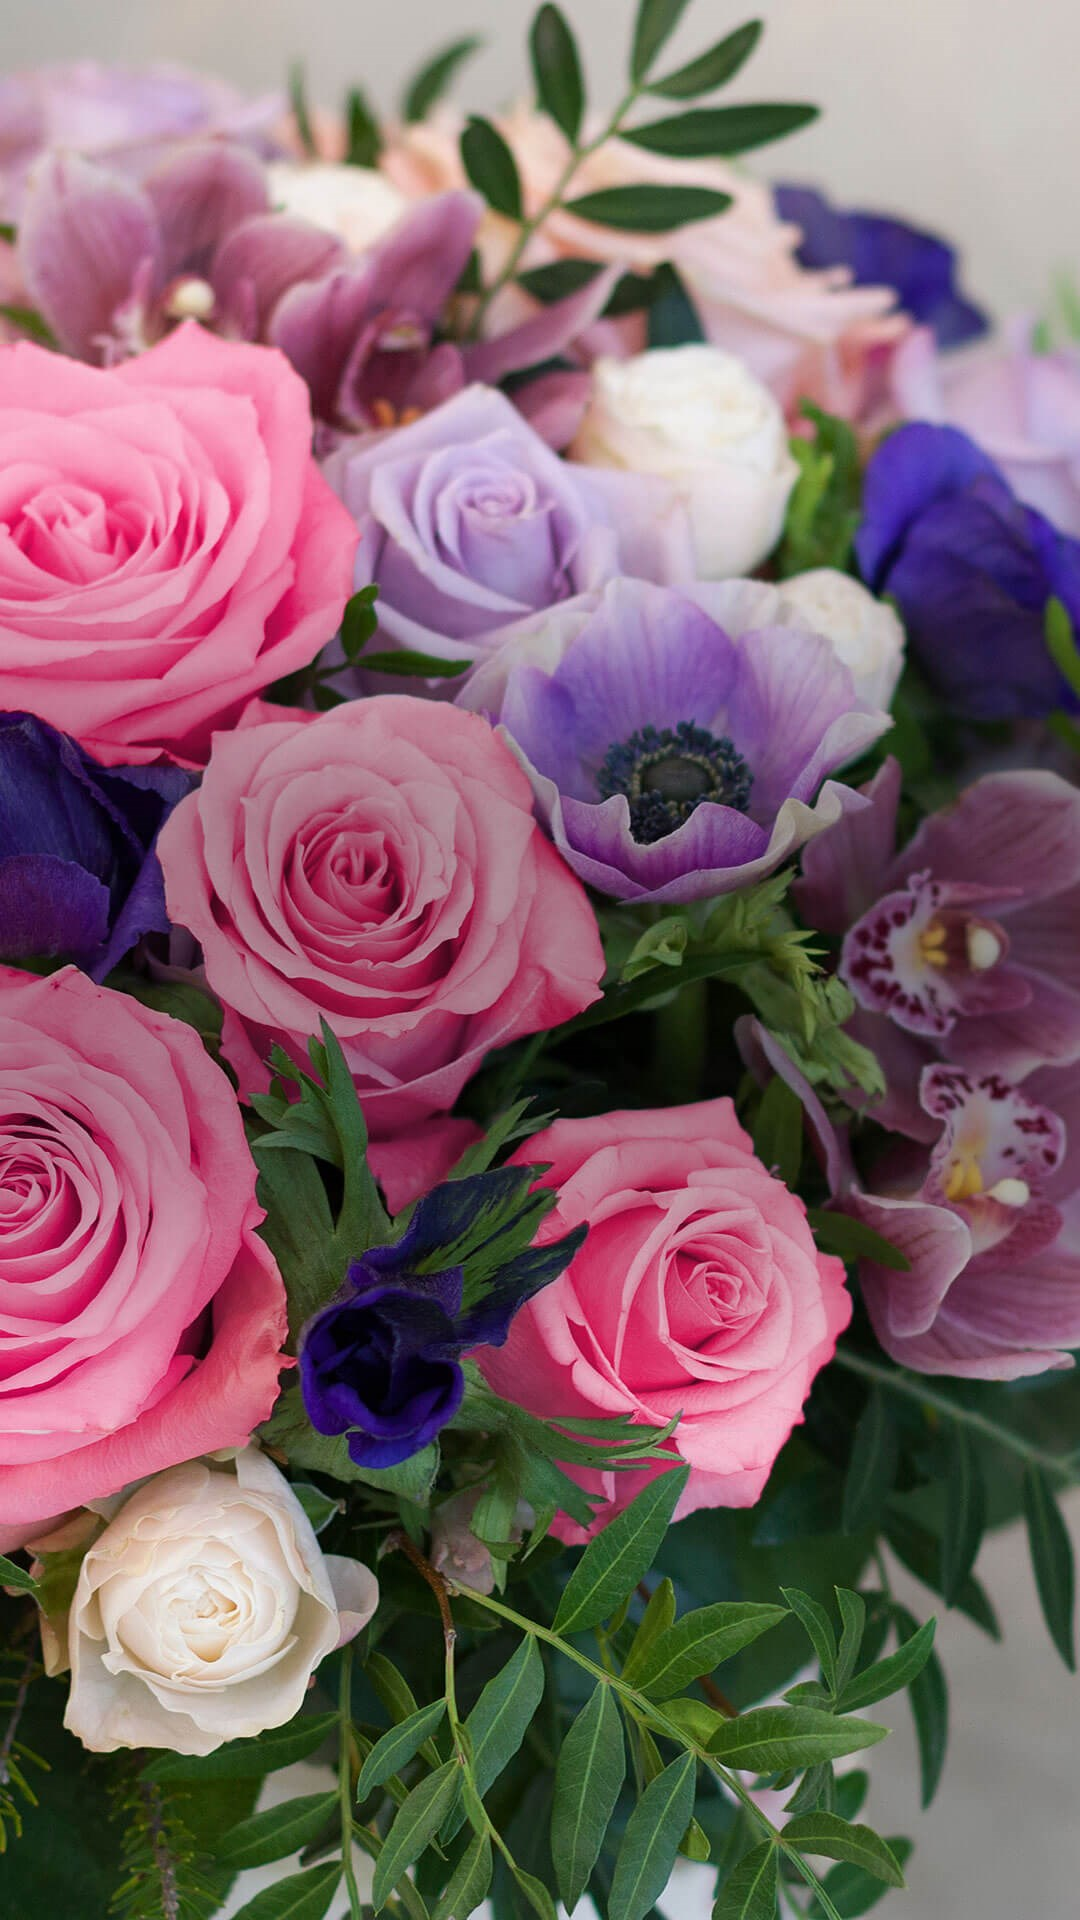 Portrait of a bouquet of blue, pink and purple flowers